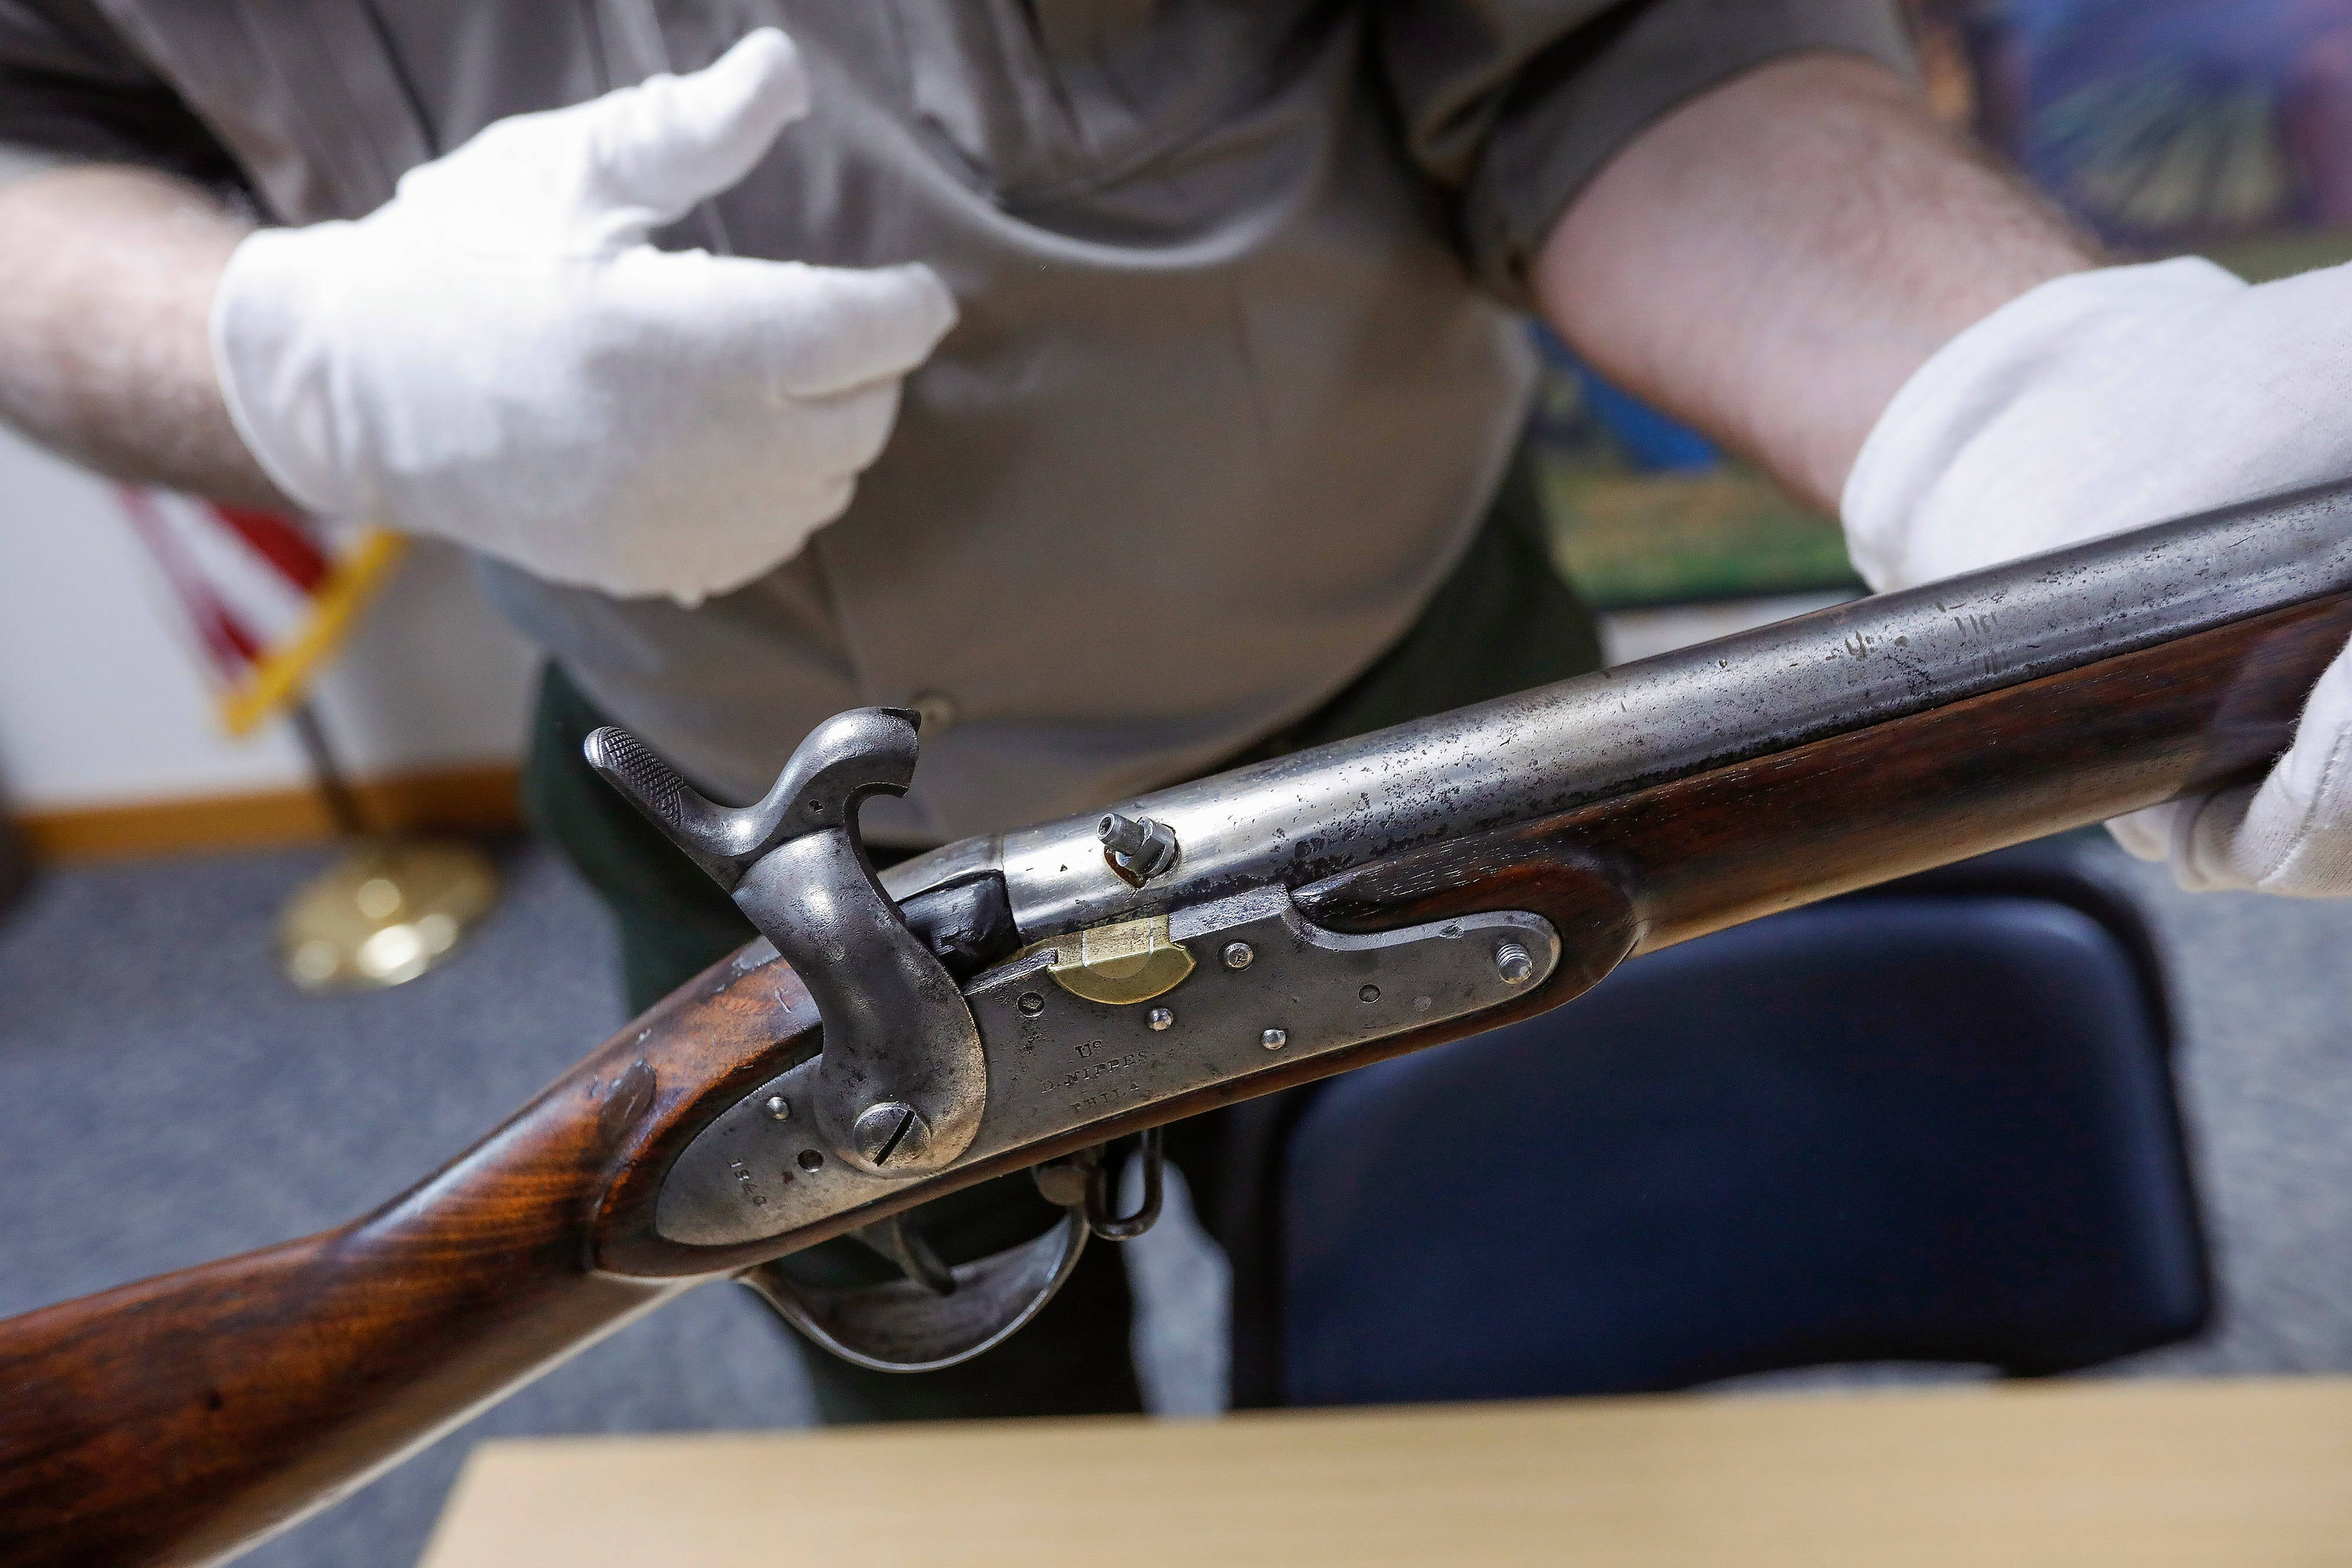 Jeff Patrick, the curator at Wilson's Creek National Battlefield, displays a Civil War era musket. The musket is one of the artifacts that will be on display after renovations to the visitors center are completed.